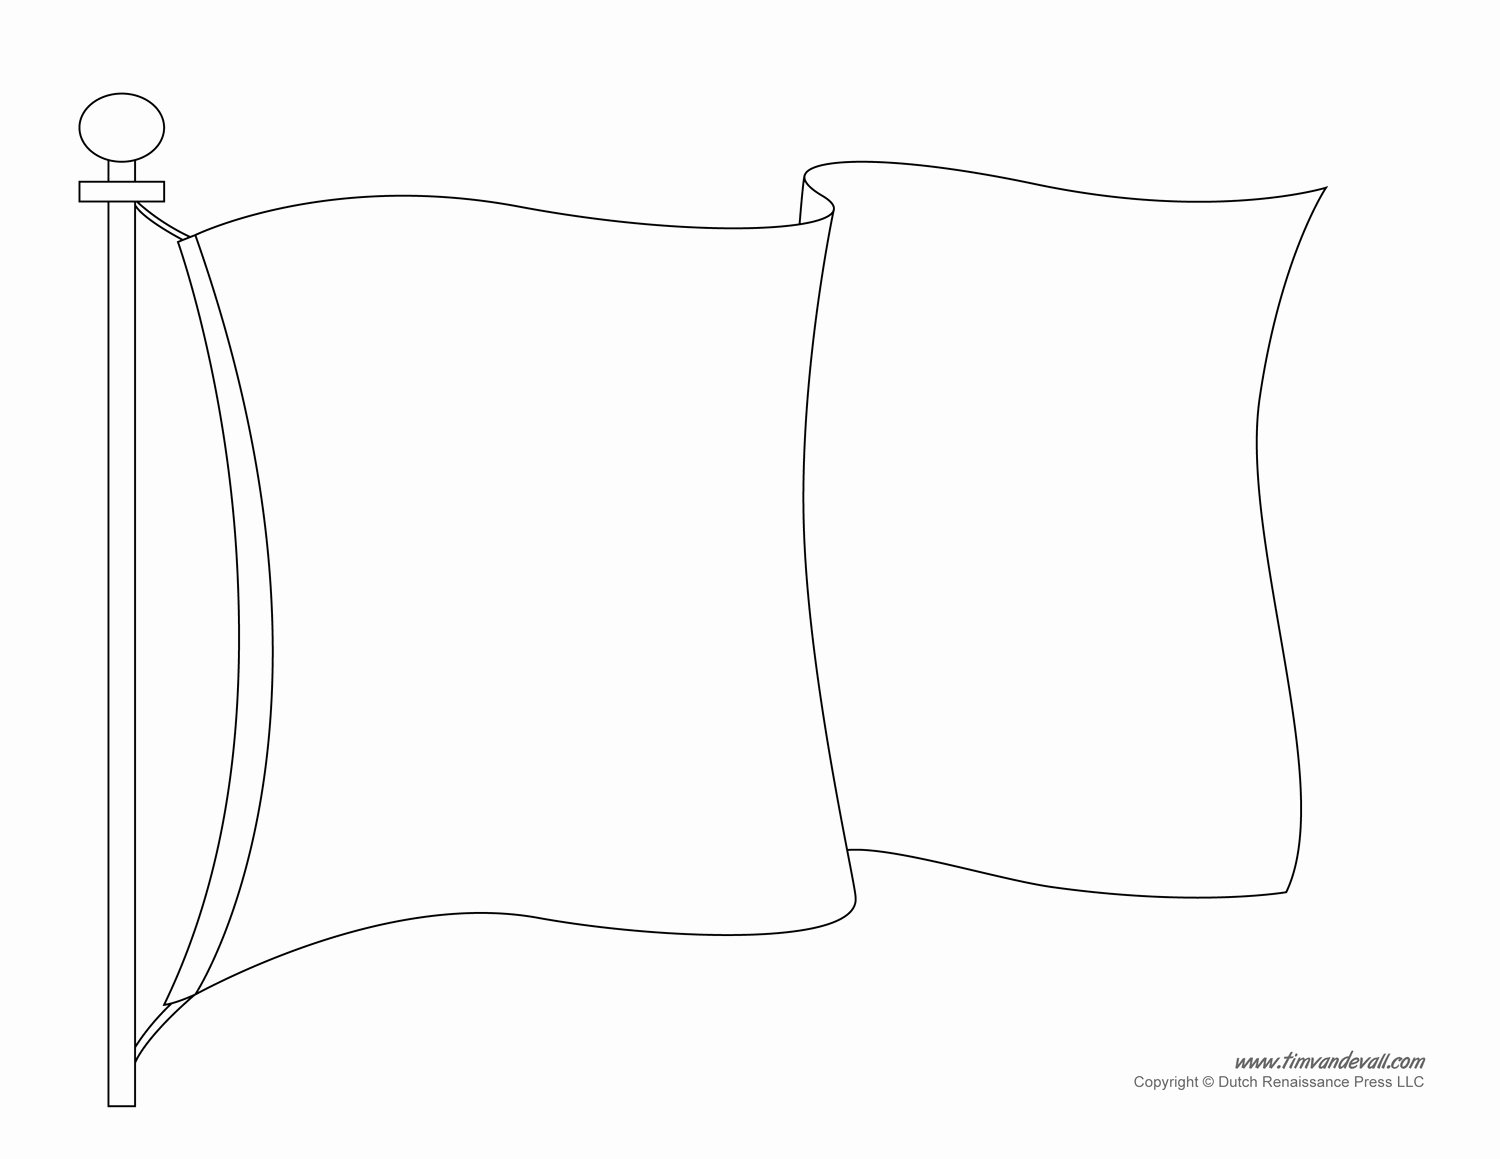 Blank Flag Template Lovely Blank Flag Template Printable Sketch Coloring Page